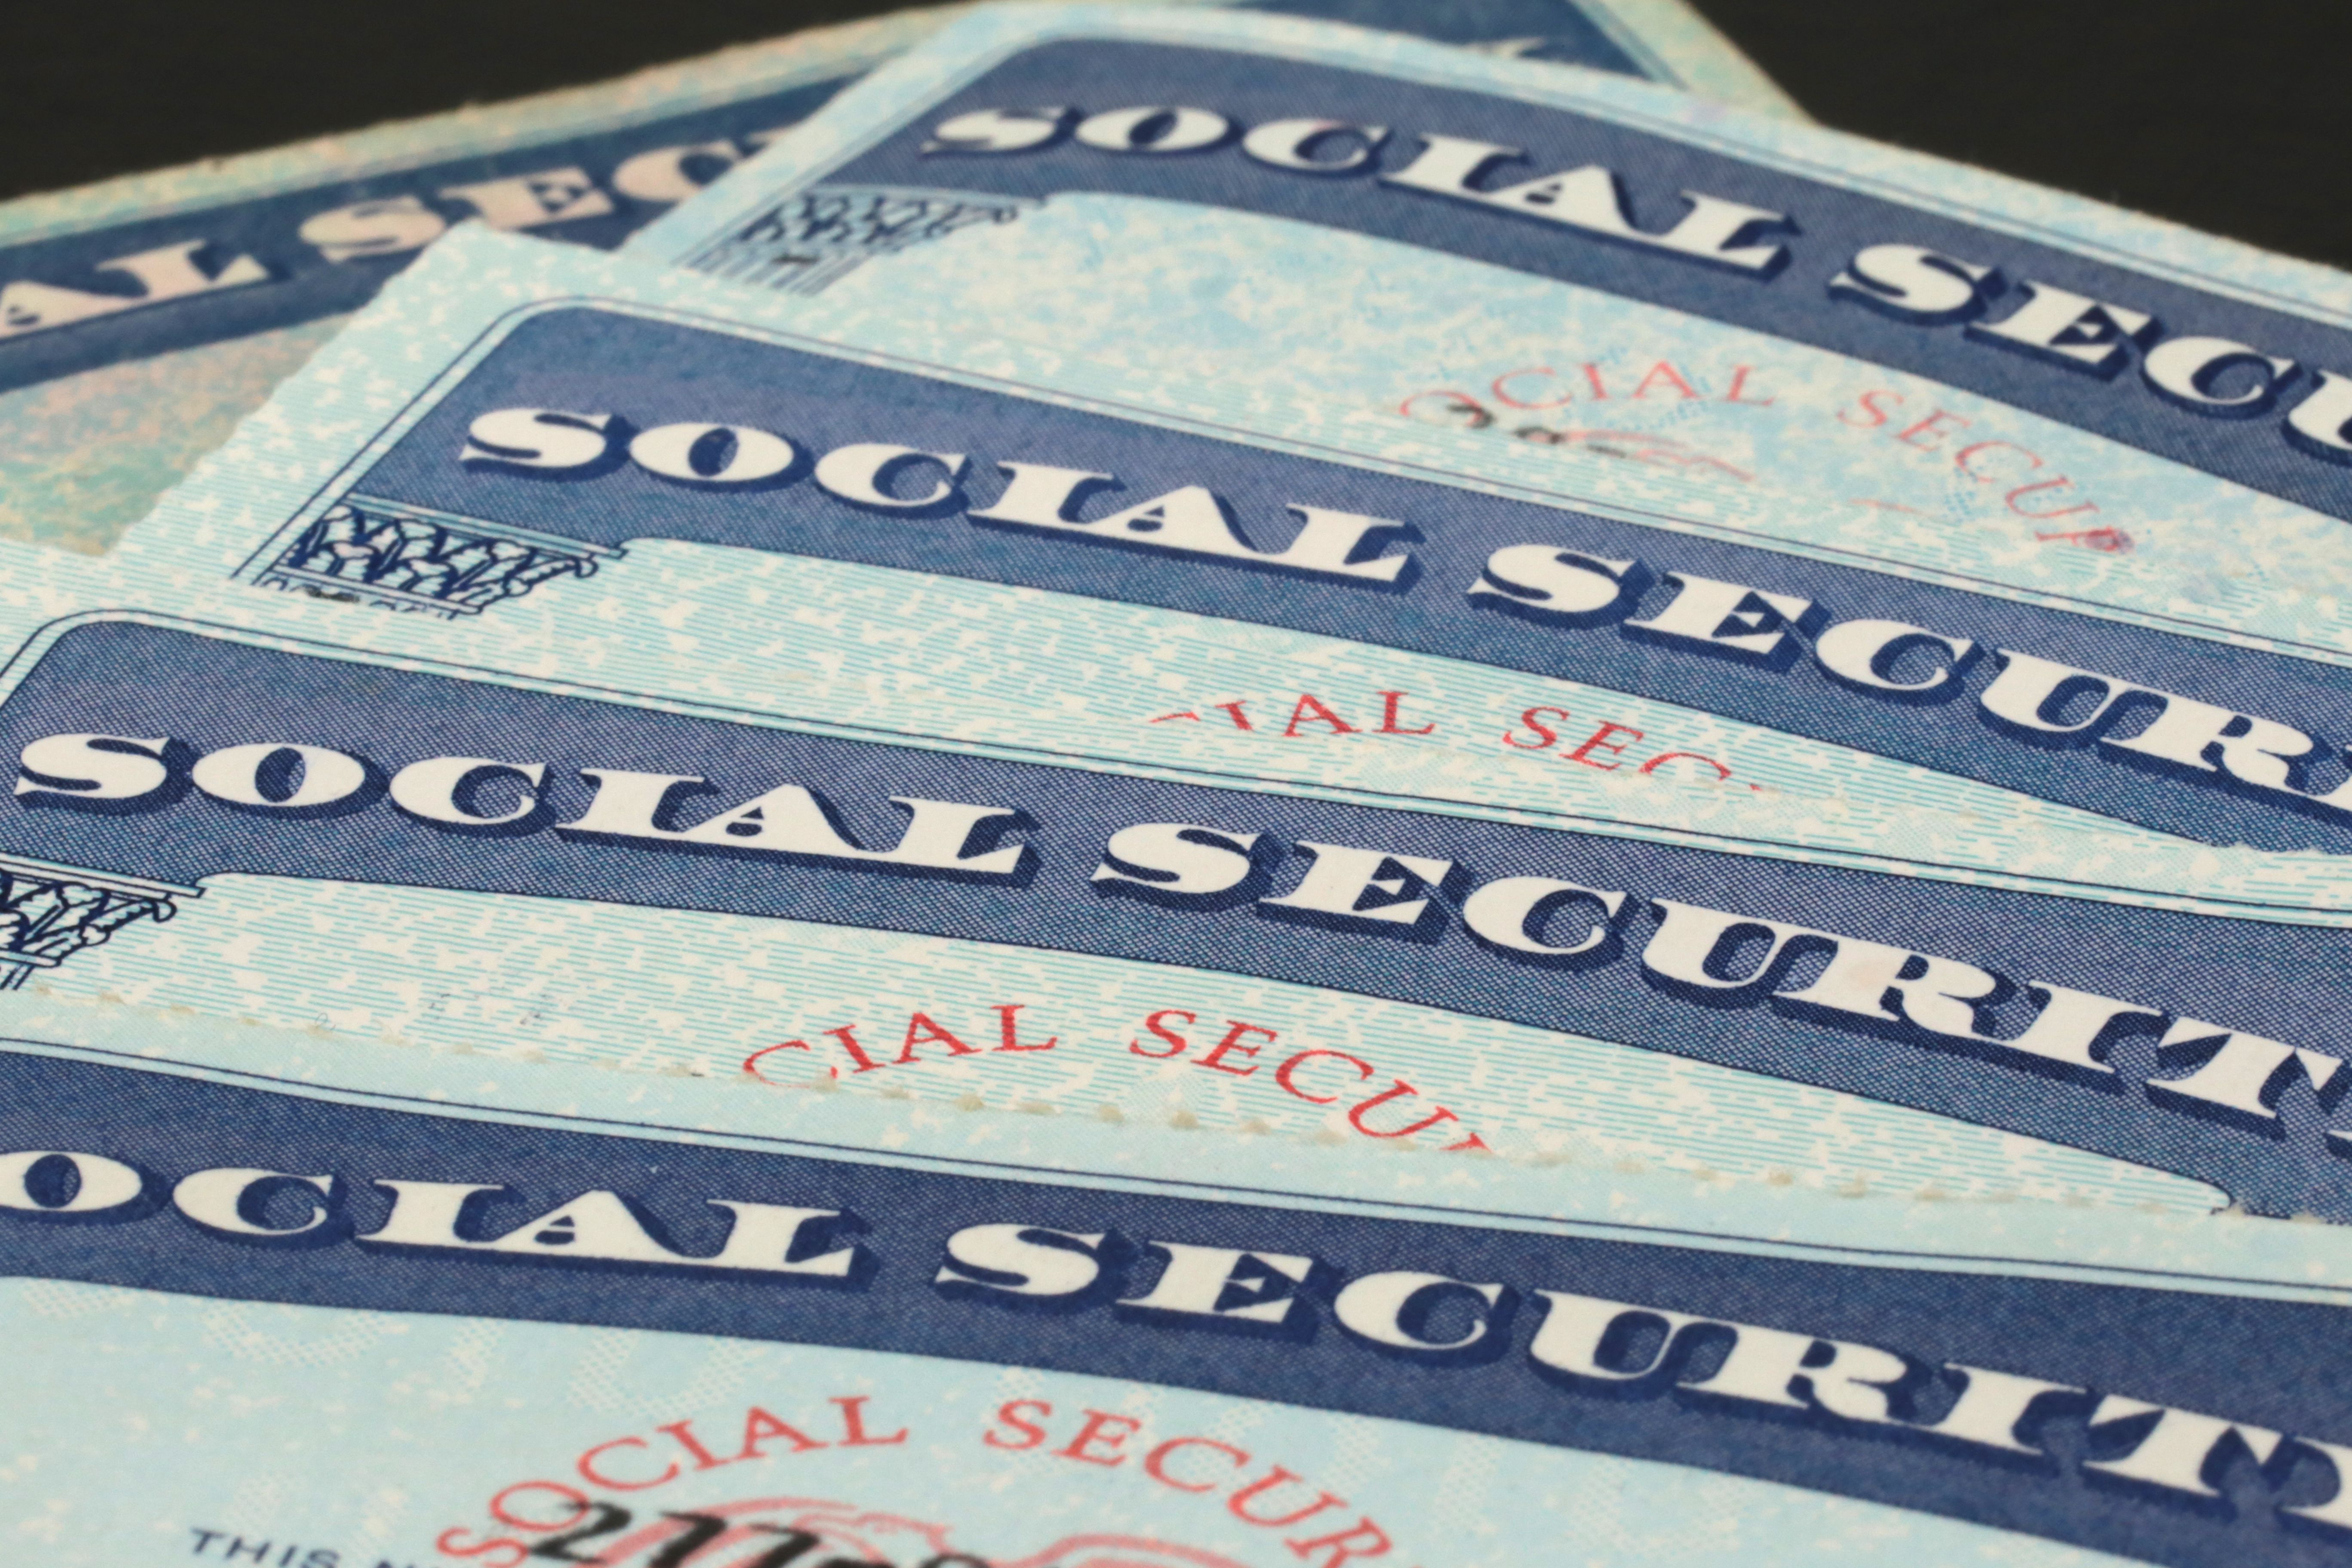 Borrowing Money From Social Security Interest-Free